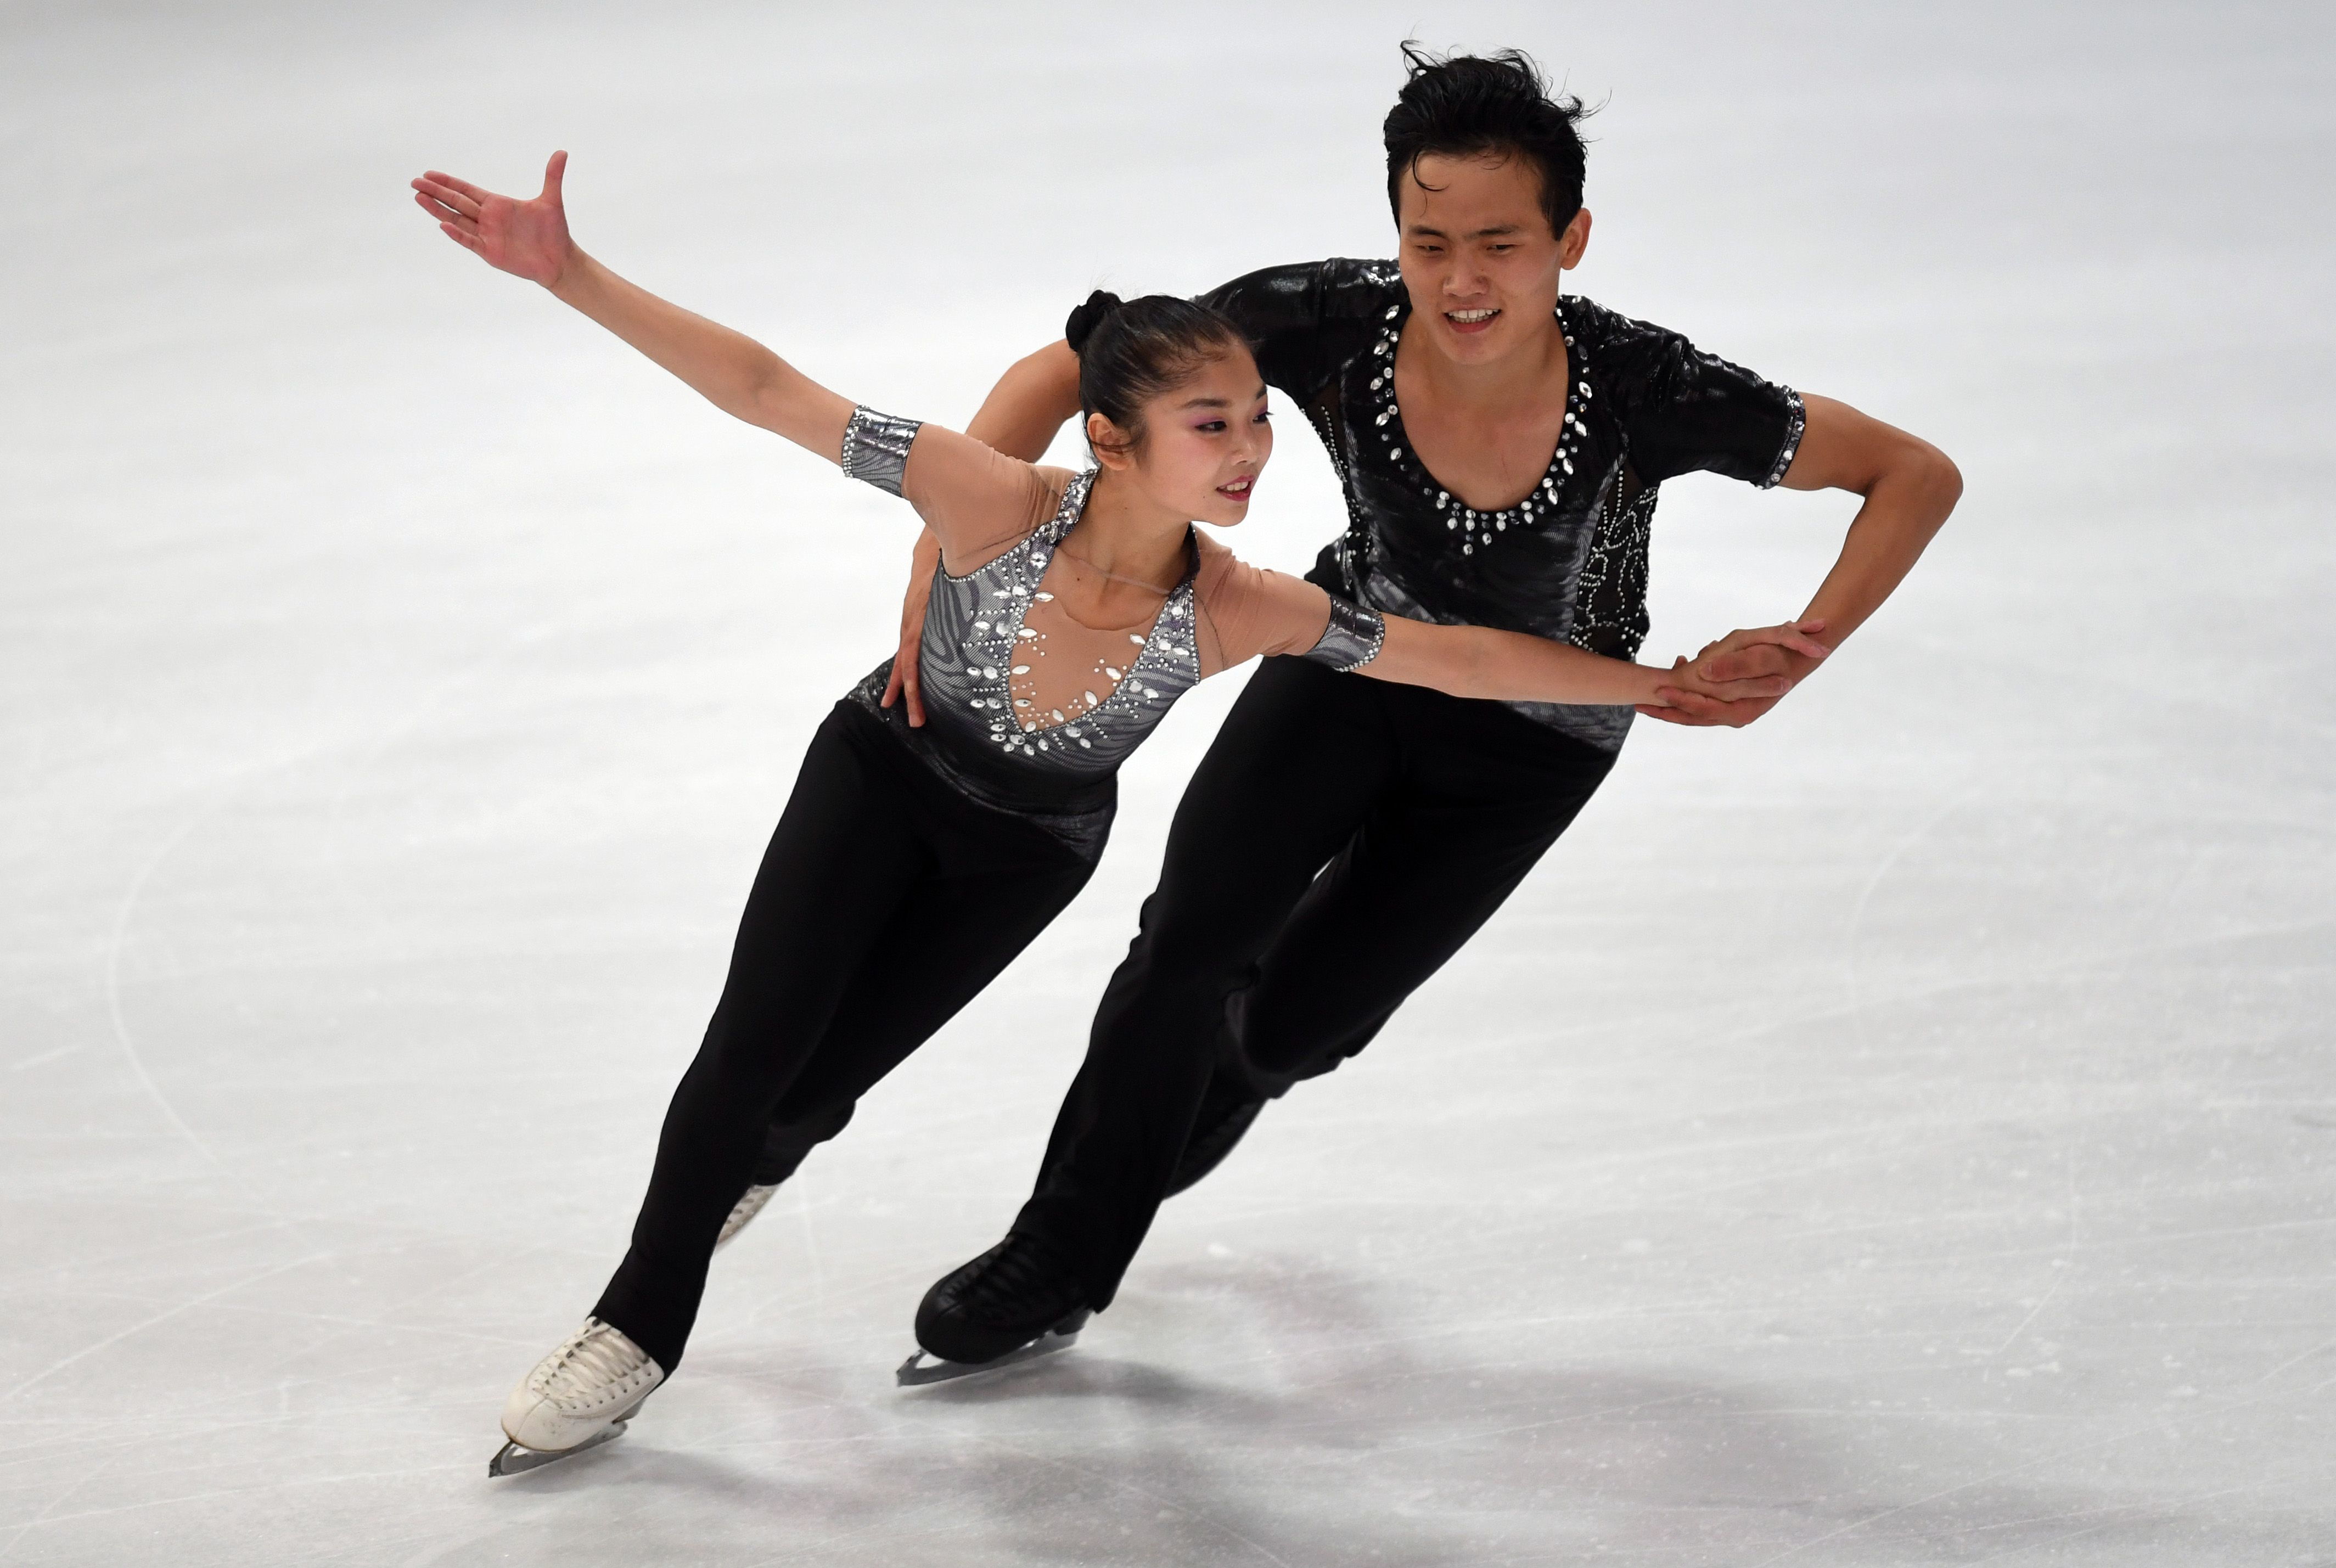 N. Korean Figure Skating Pair Qualifies for PyeongChang 2018